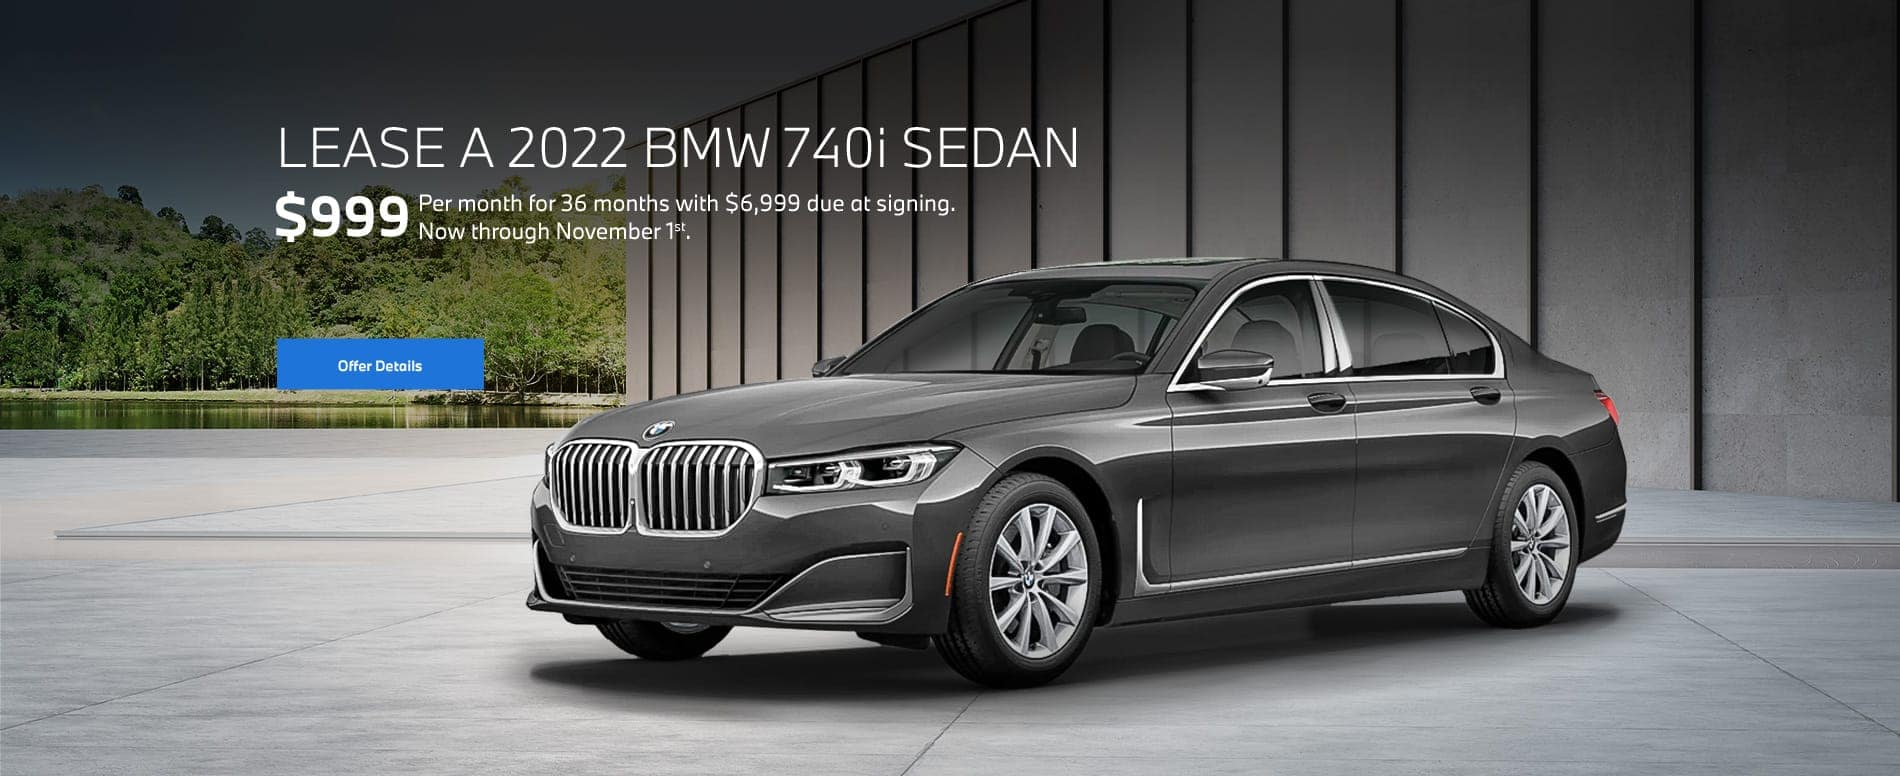 Grey 7 series parked outside modern building